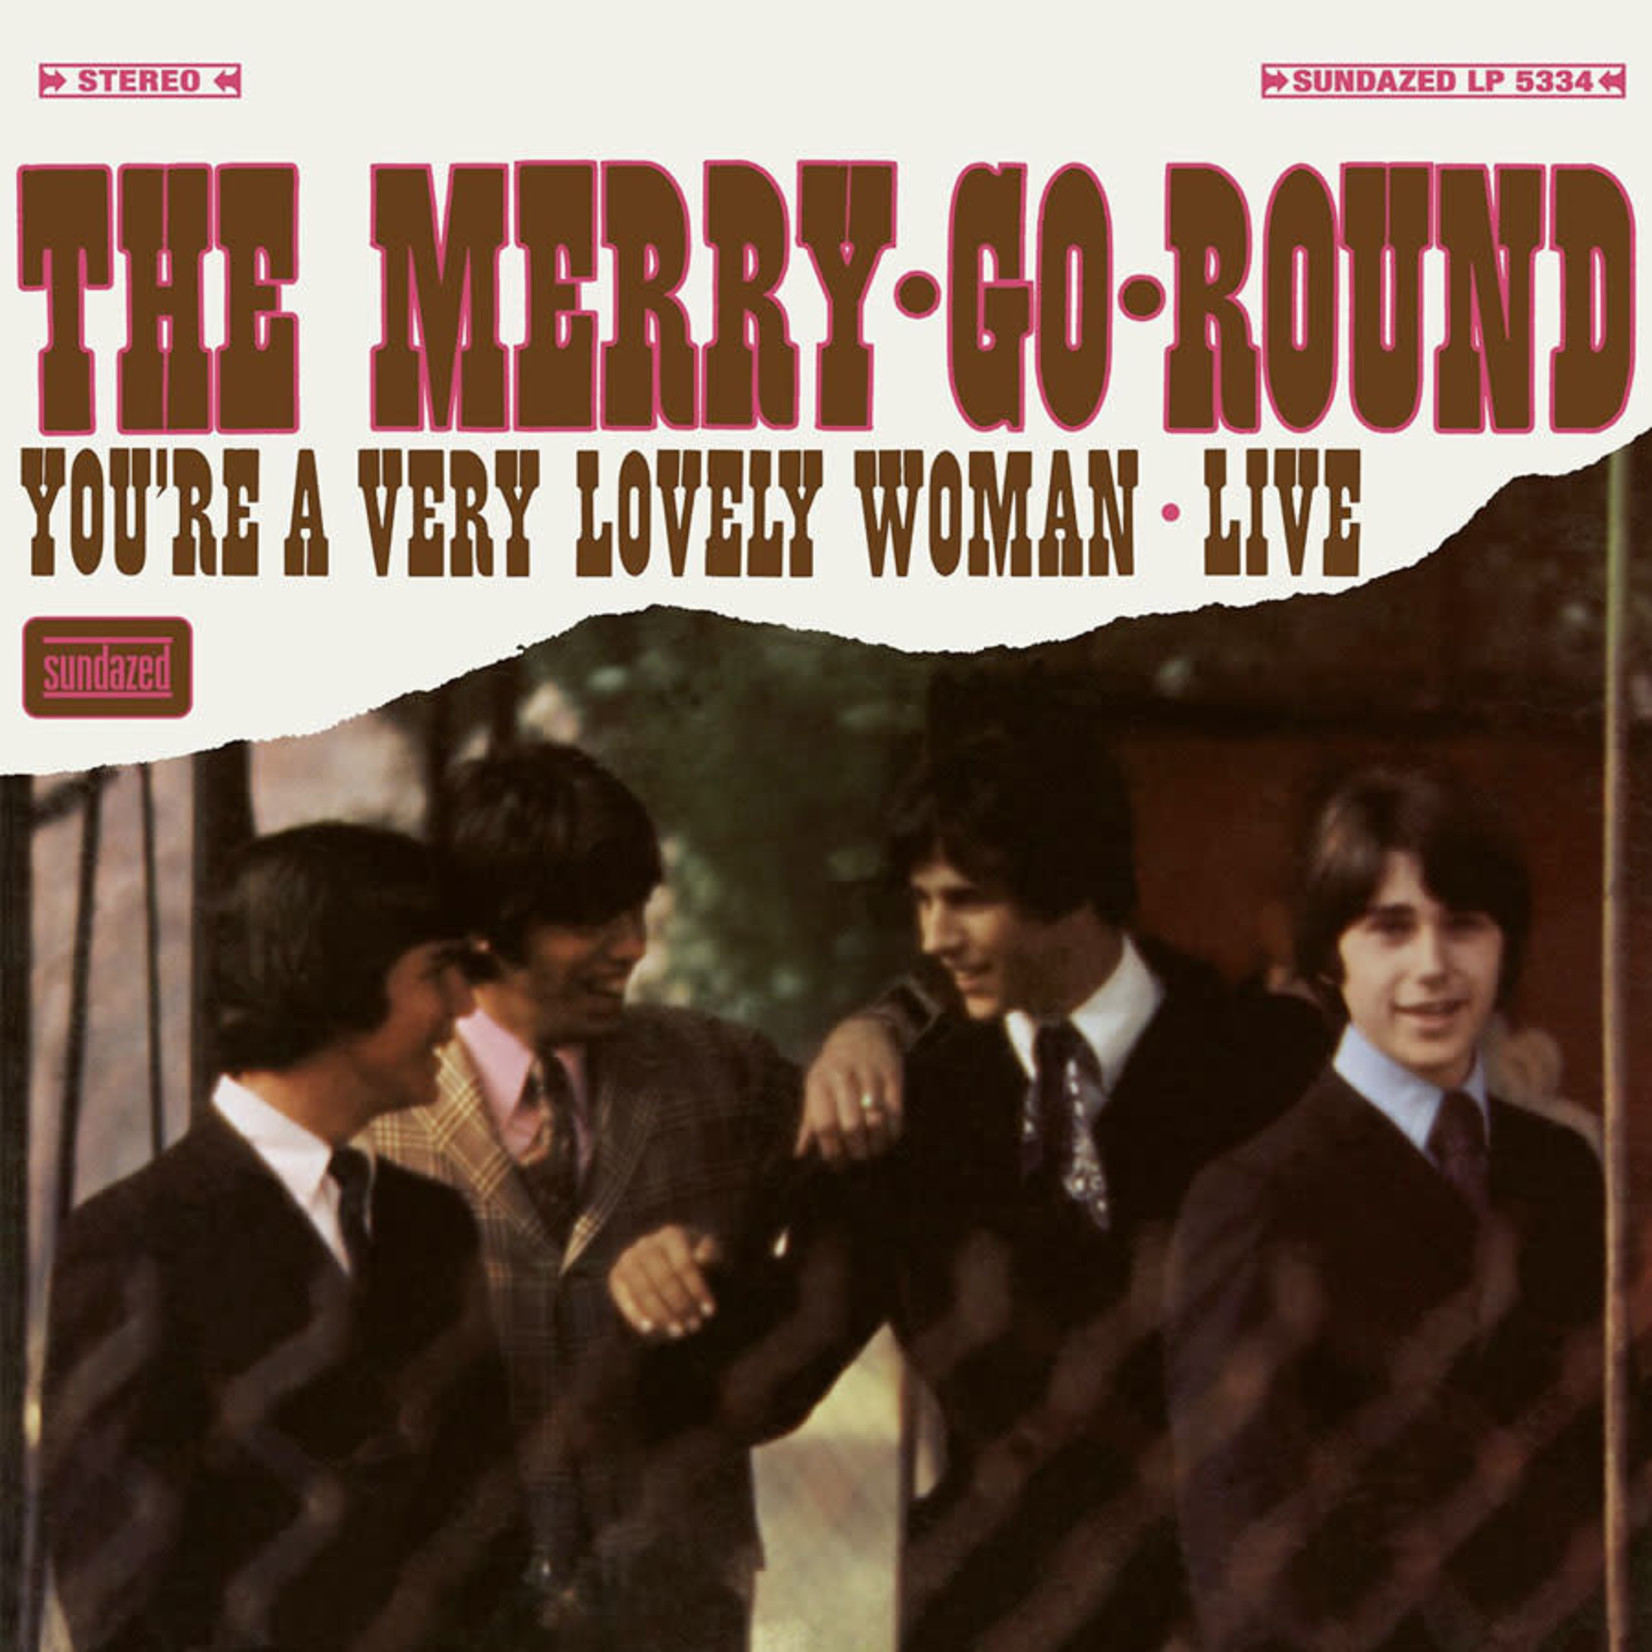 Vinyl The Merry-Go-Round - You're A Very Lovely Woman Live